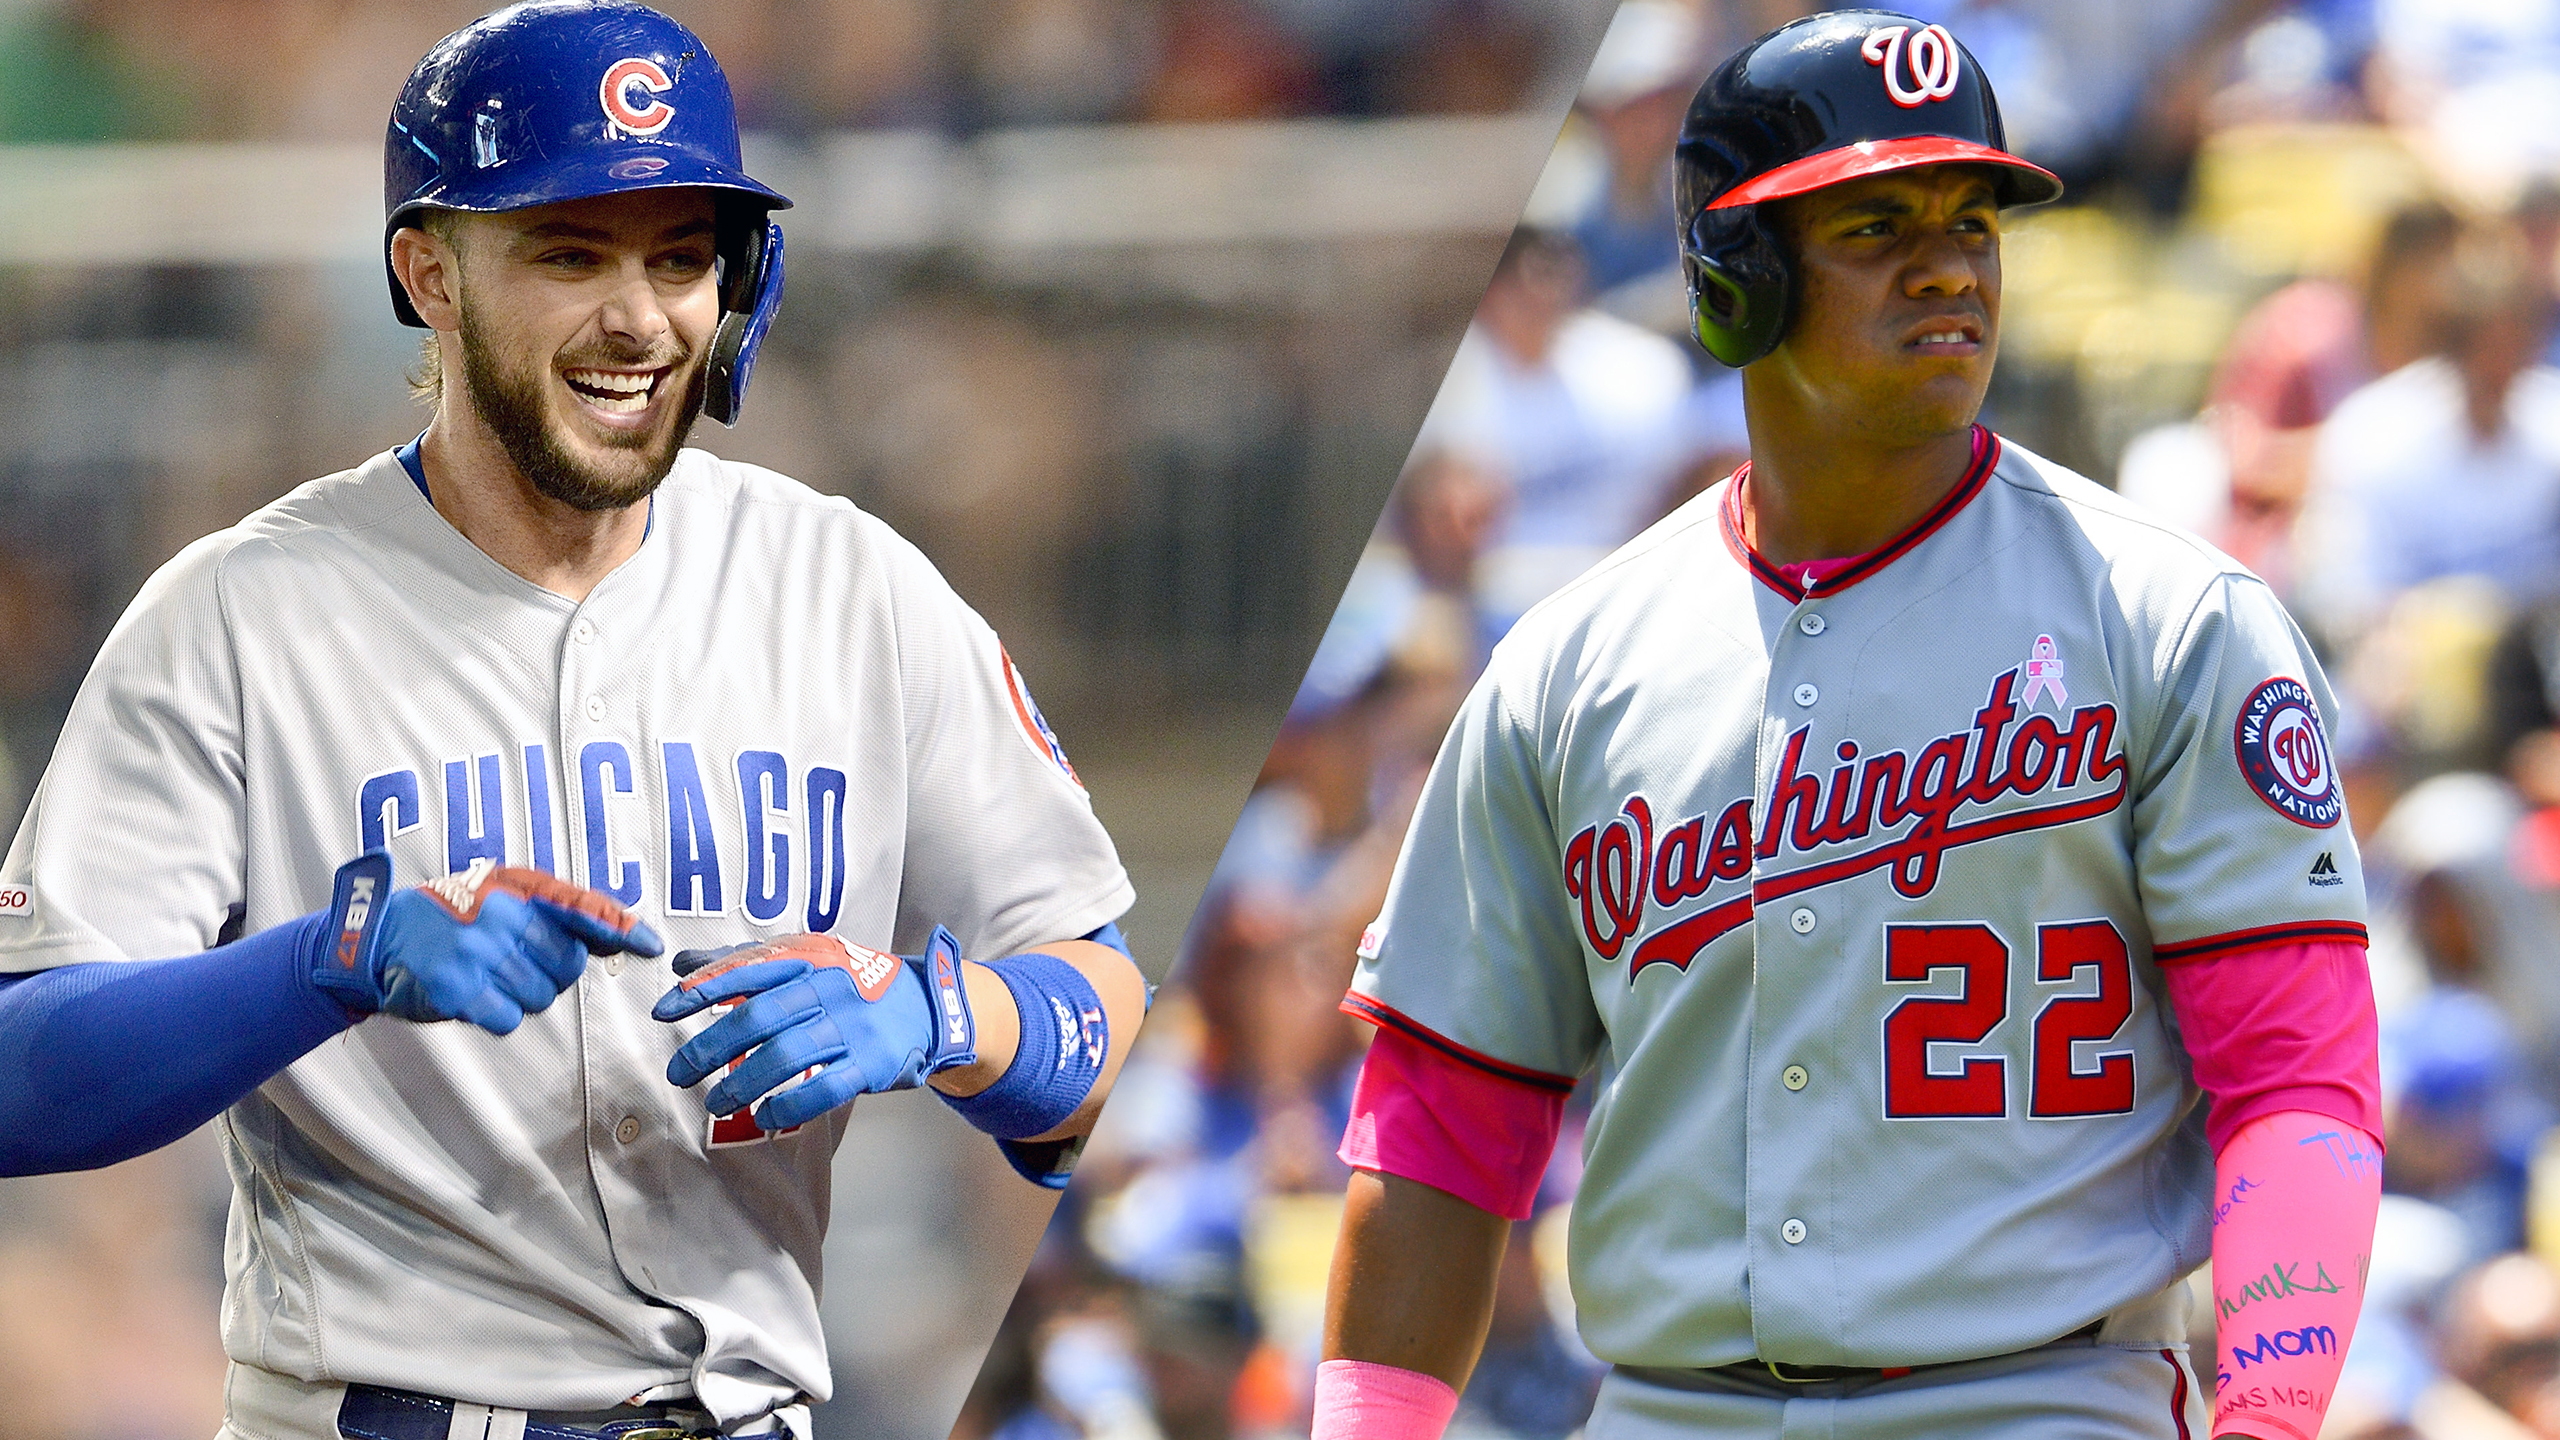 Chicago Cubs vs. Washington Nationals (re-air)